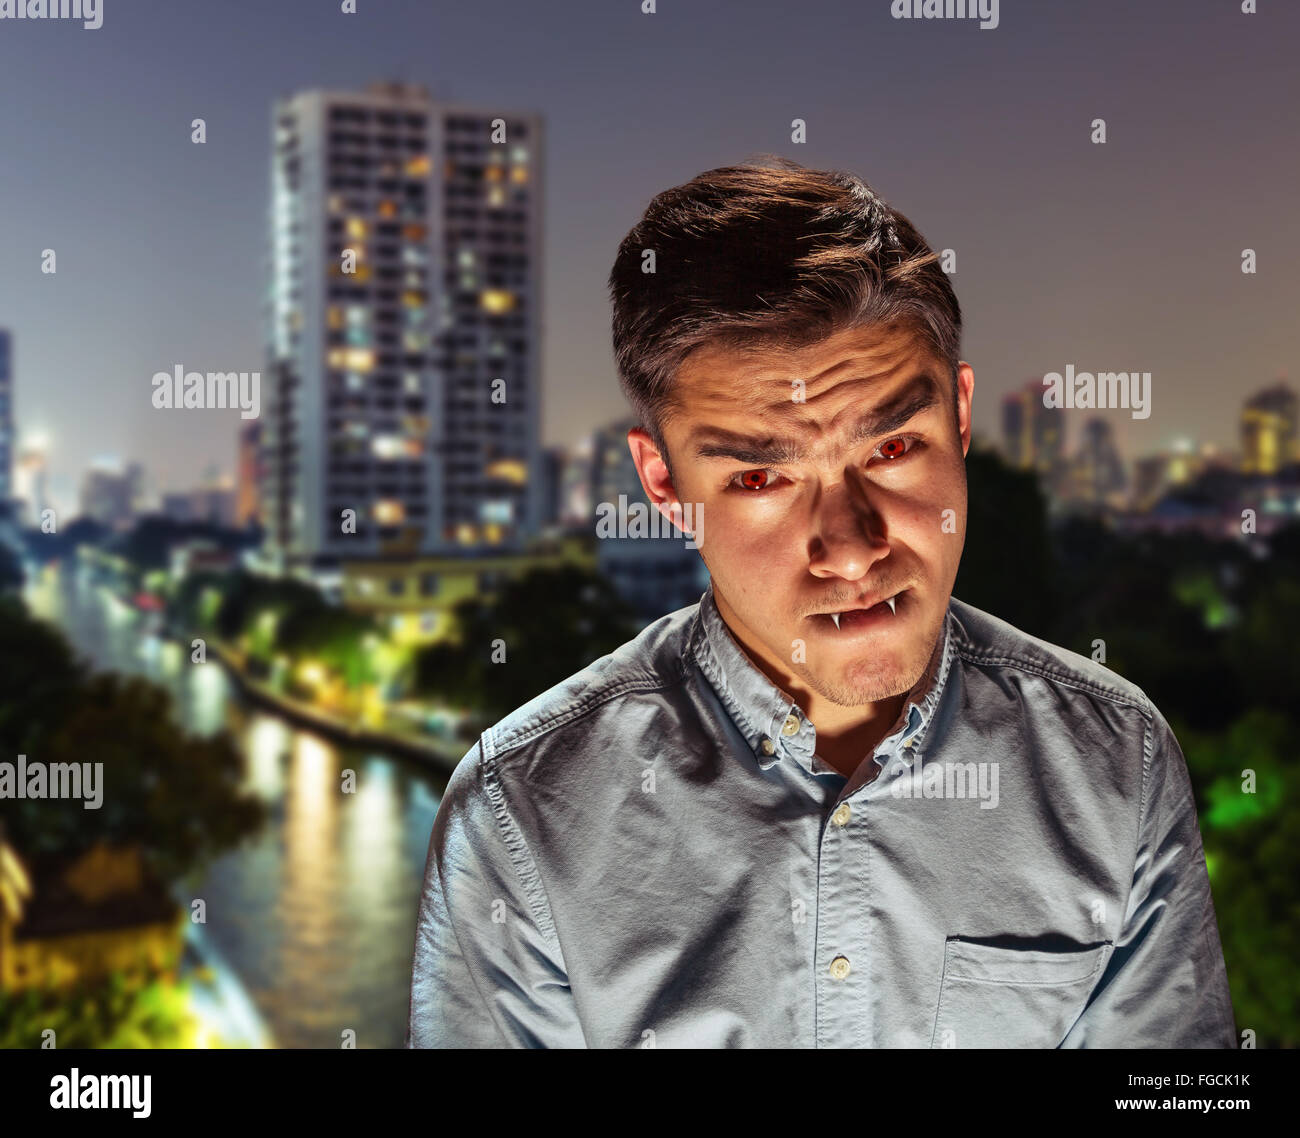 Vampire in the town - Stock Image